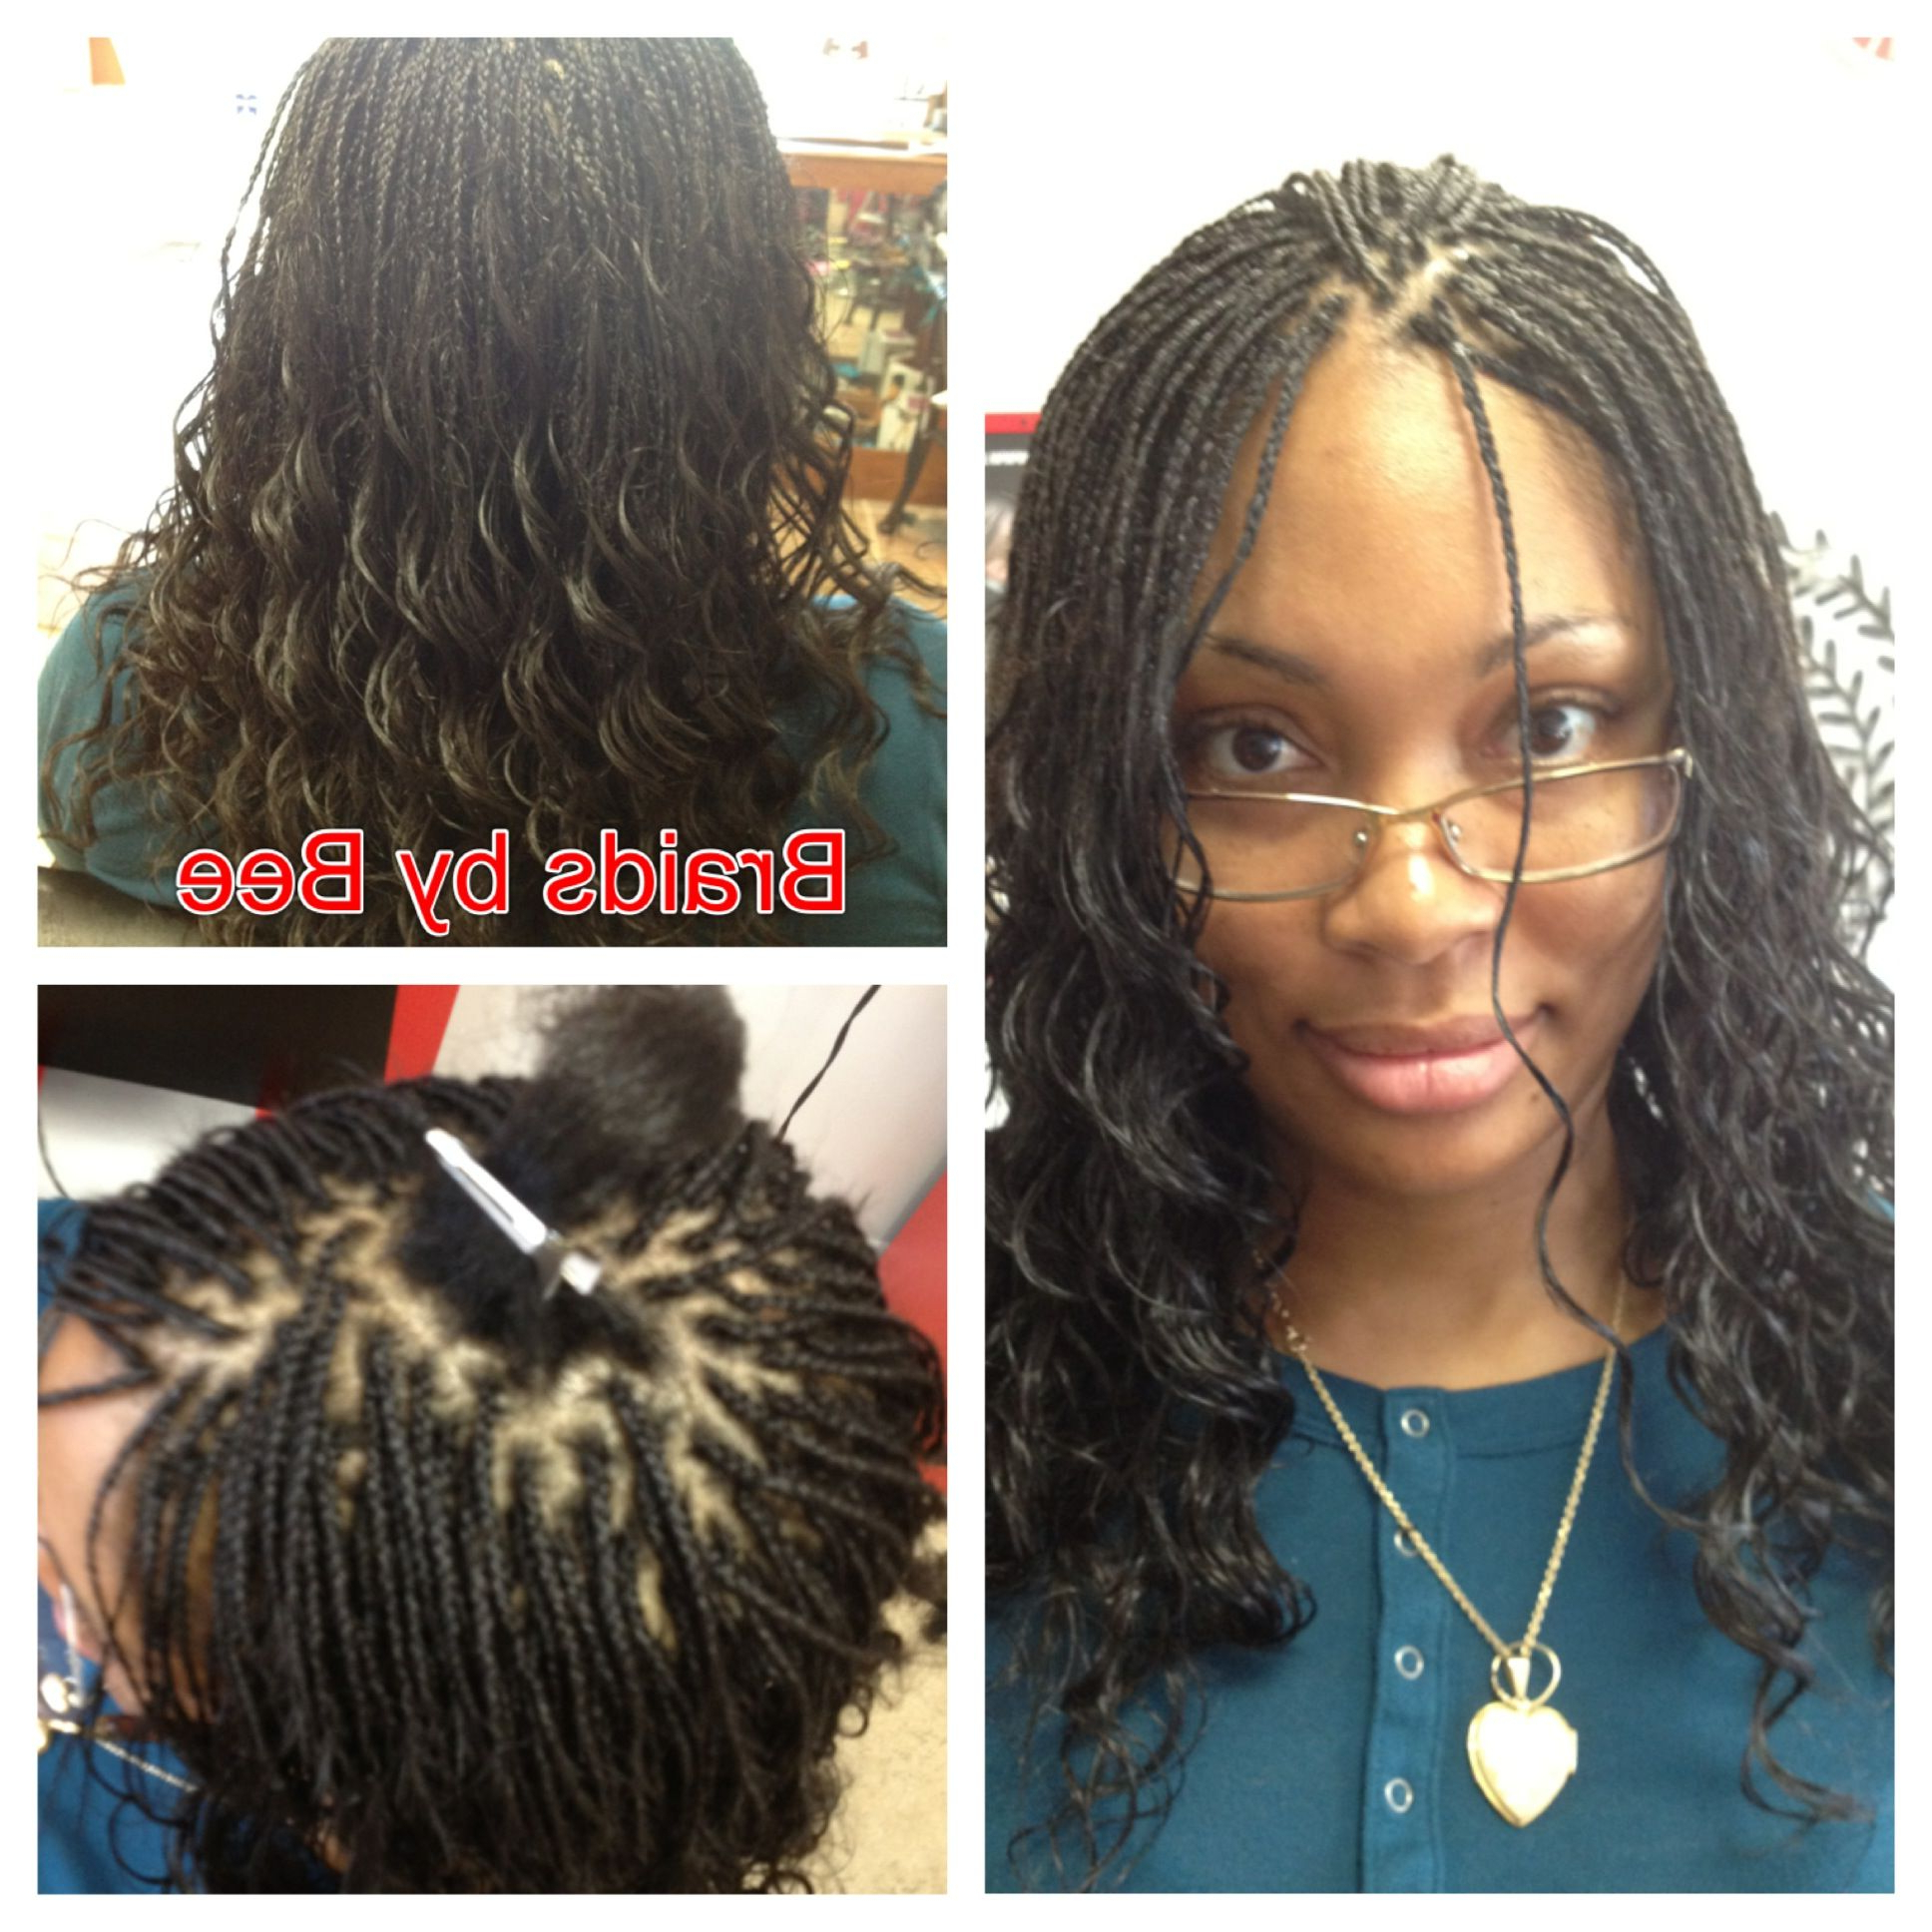 Braids Than Normal Micro Box With Regard To Most Current Micro Braid Hairstyles With Curls (View 2 of 20)